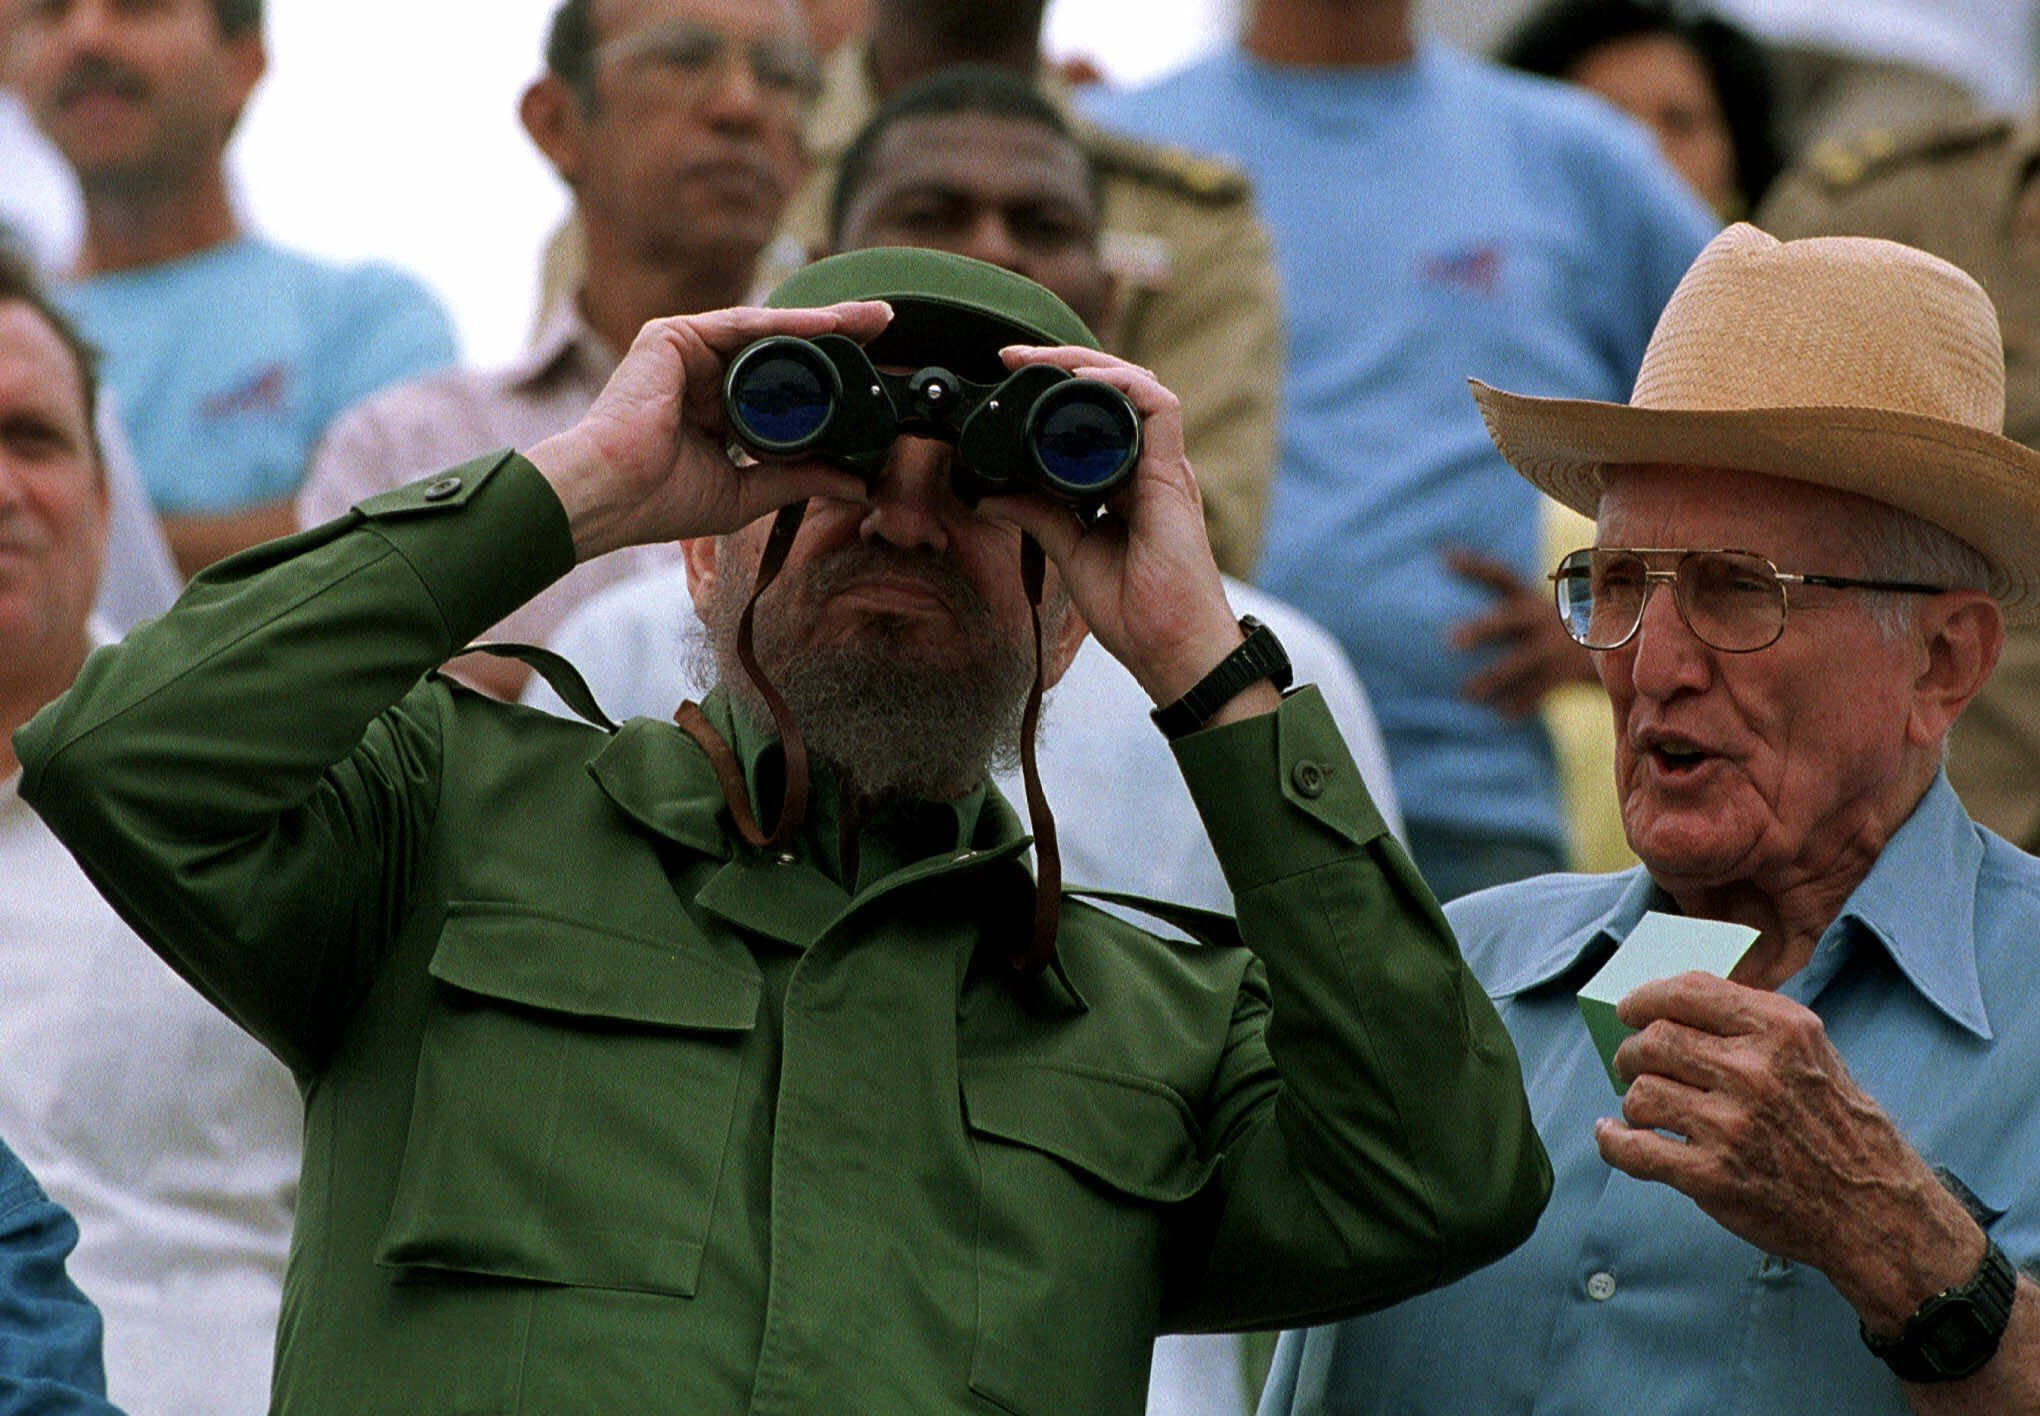 FILE - In this May 1, 1999 file photo, Vice President Jose Ramon Fernandez, right, stands with Cuban leader Fidel Castro who watches May Day festivities at Revolution Plaza in Havana, Cuba. Fernandez, a career soldier who joined Cuba's 1950s Revolution and became a prominent collaborator with the Castro brothers, died on Sunday, Jan. 6, 2019, according to official media. He was 95. (AP photo/Jose Goitia, File)